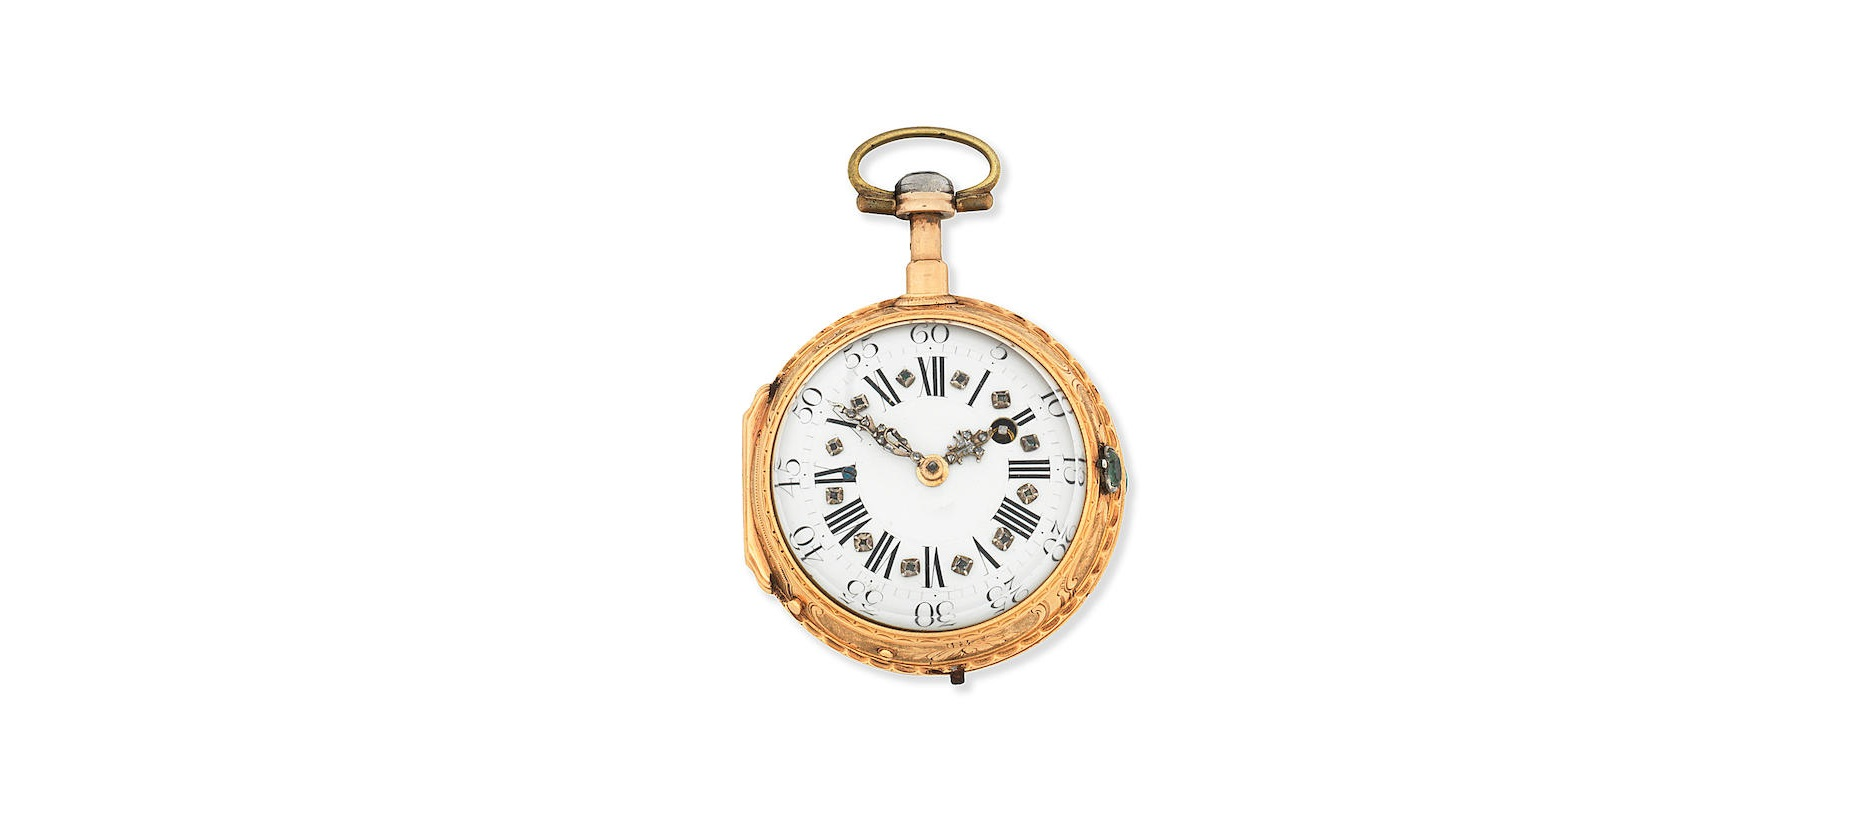 Lot 3 - A gilt metal key wind open face quarter repeating pocket watch